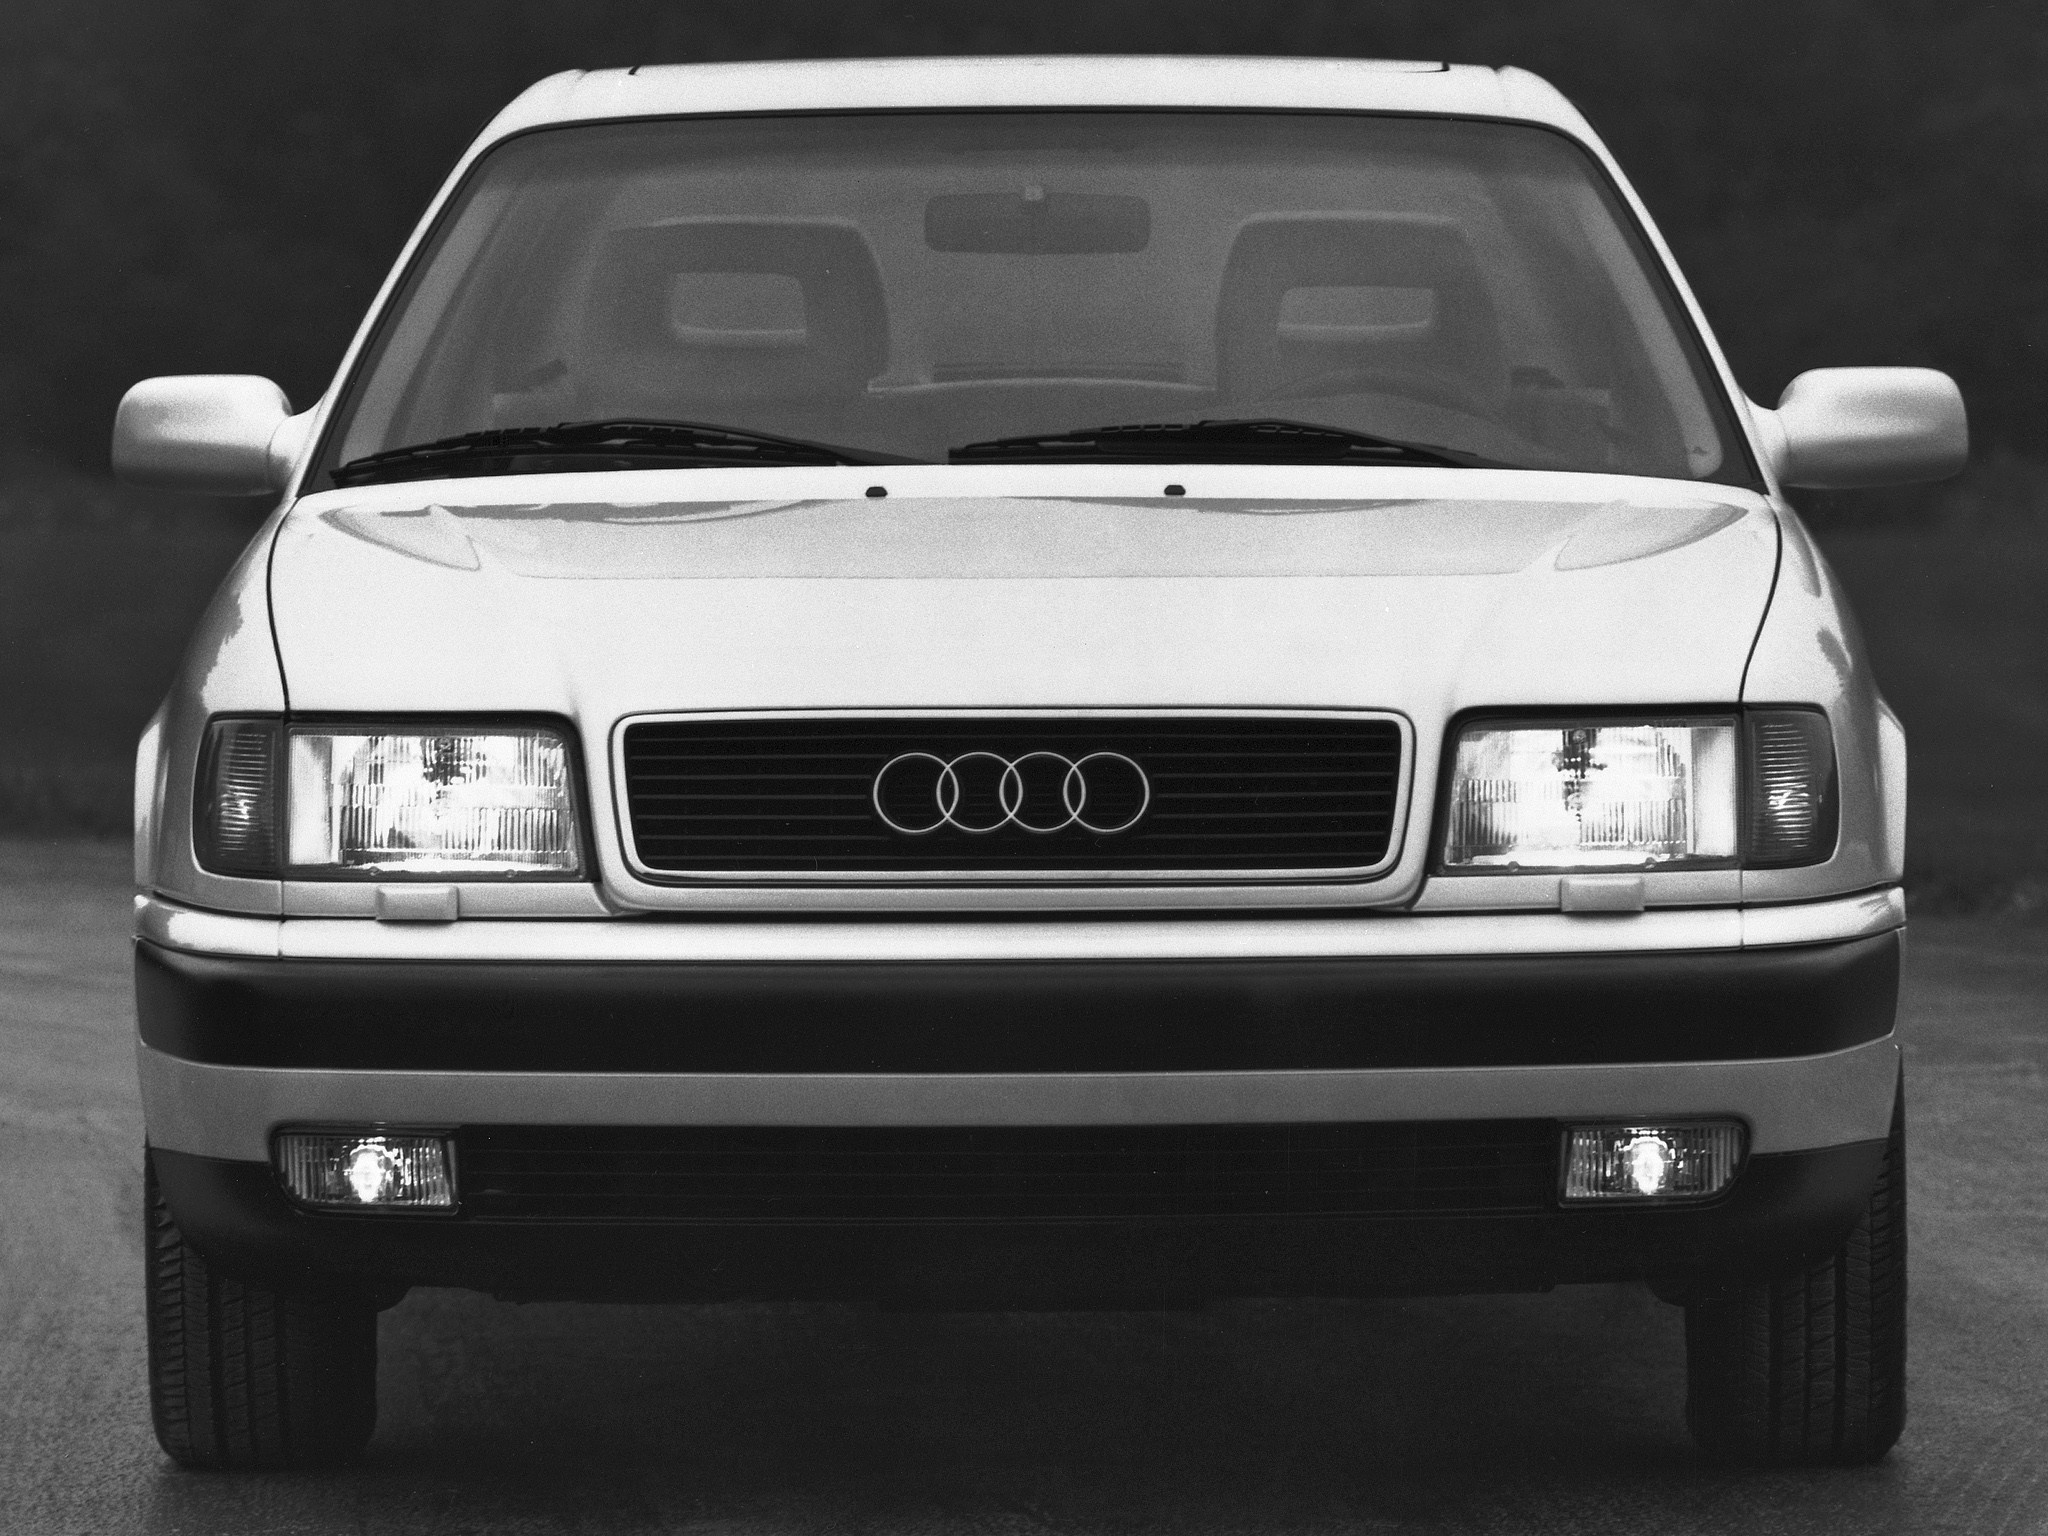 Audi A Avant C in addition Audi C additionally Ot Markierung likewise Peugeot Morini Rear Wing Picture additionally Audi A P Facelift Rs Style Front Bumper Picture. on audi 100 c4 tuning